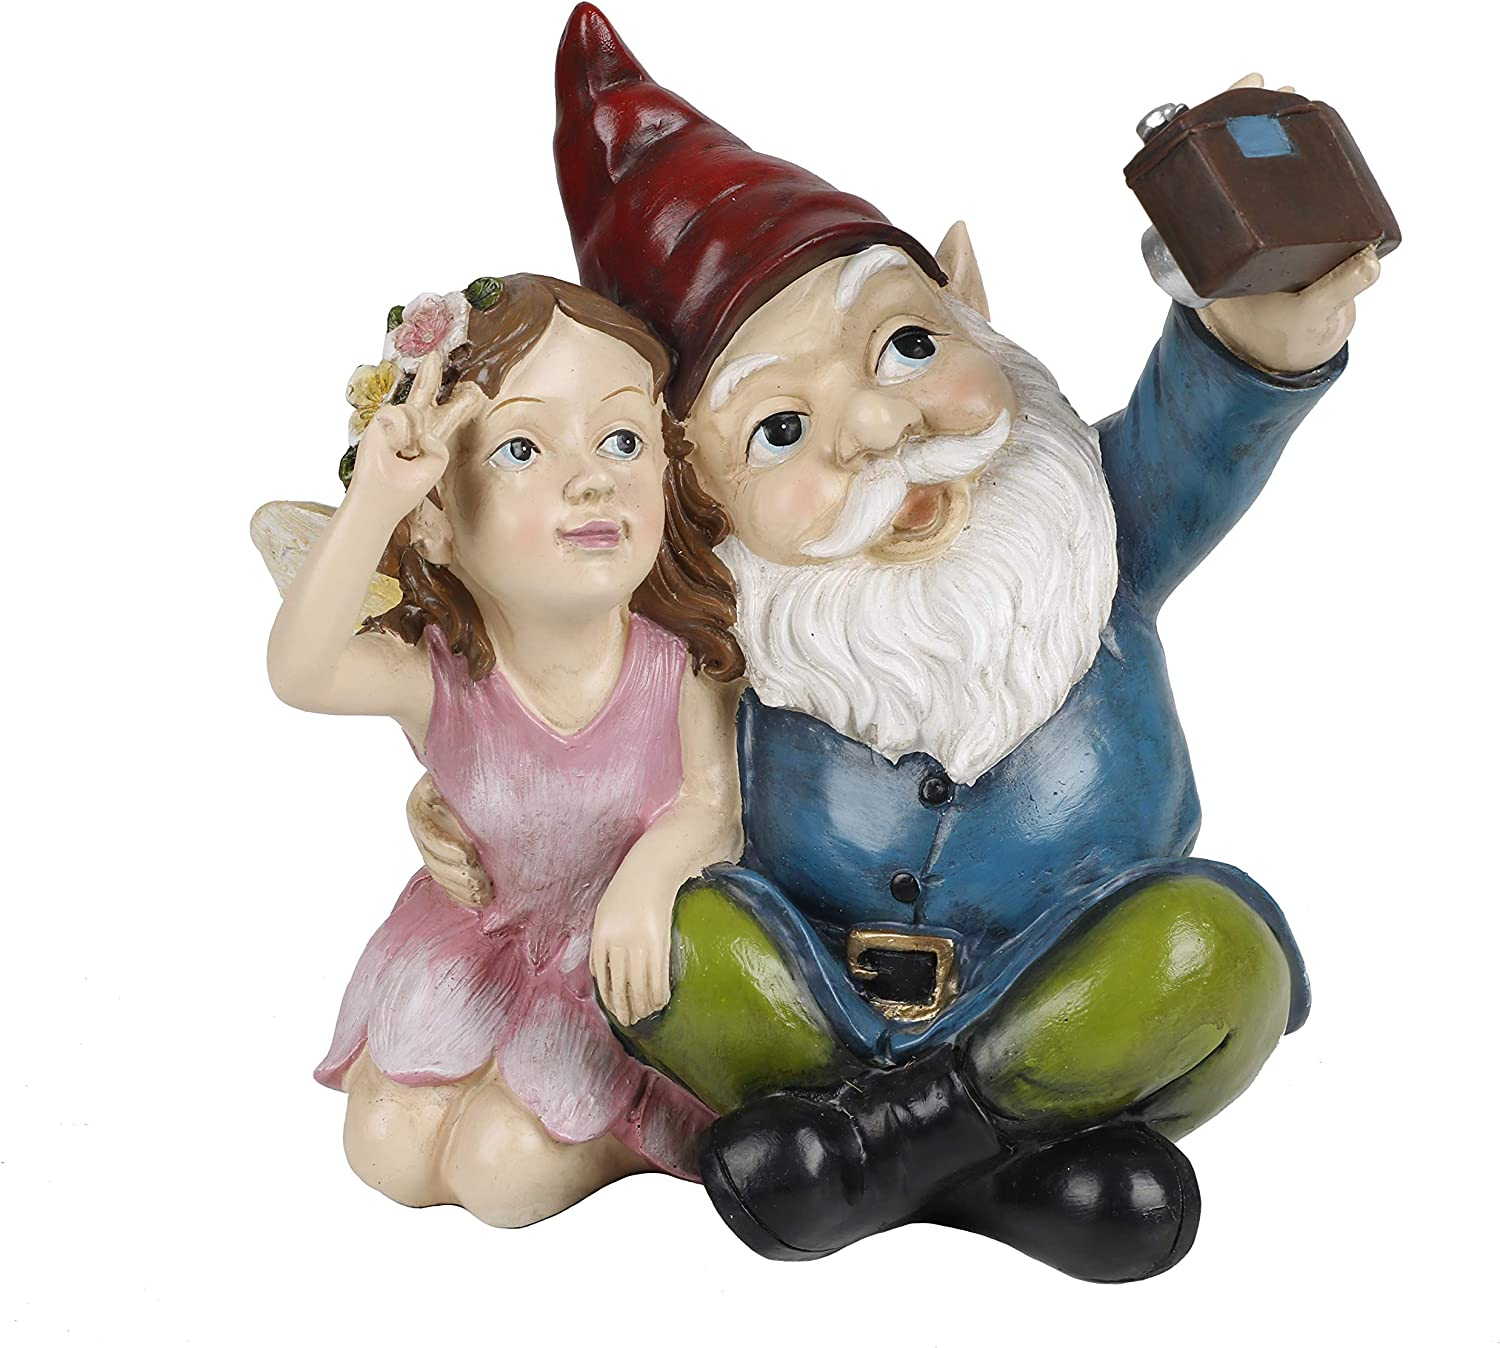 TERESA'S COLLECTIONS Garden Gnome Statue, Outdoor Gnome with Solar Lights, Cute Lawn Gnome Taking Photo with Garden Fairy, Funny Decoration for Home Yard